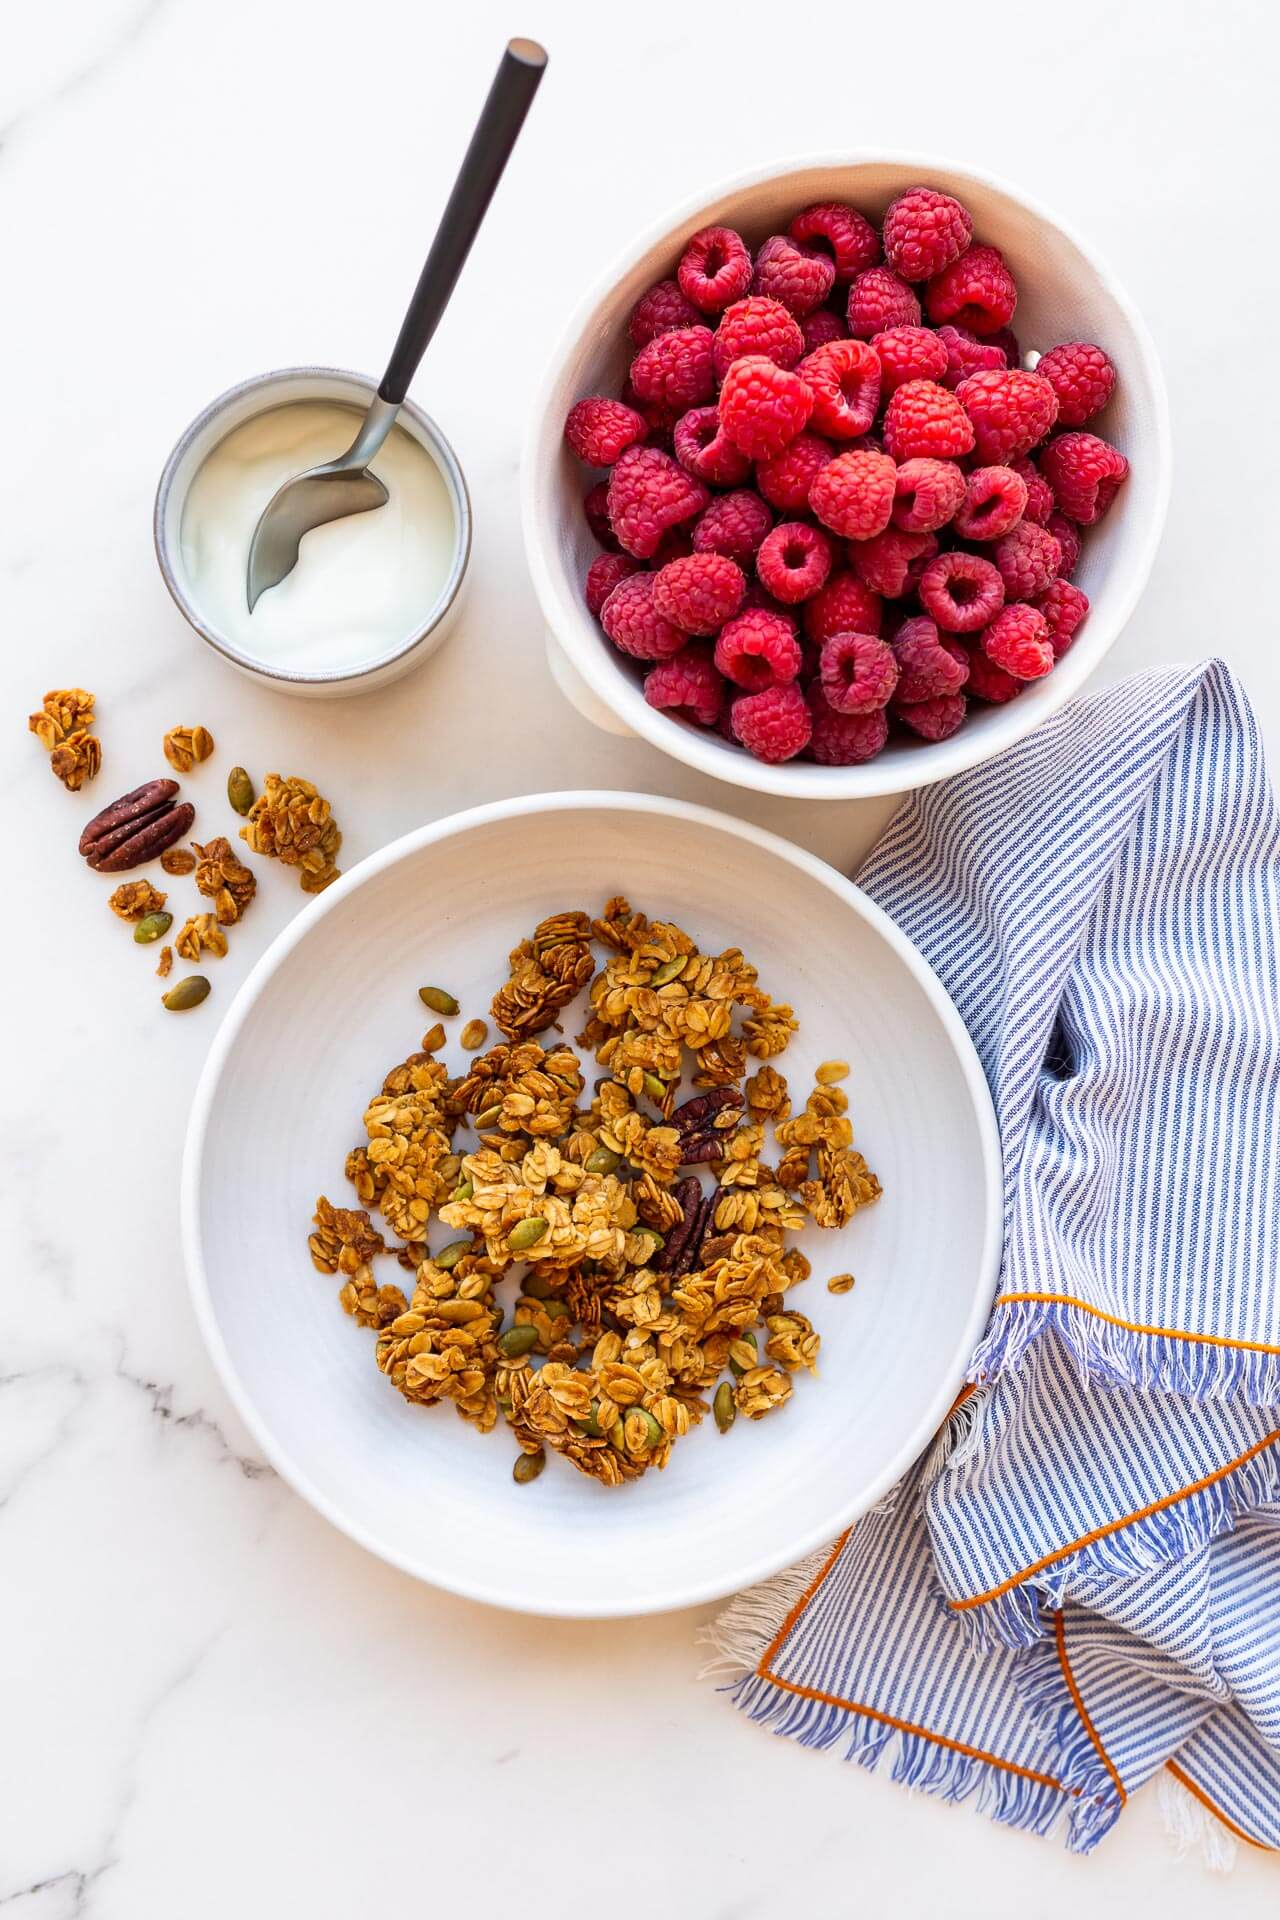 A bowl of granola clusters served with a bowl of berries and greek yogurt, striped linen napkin